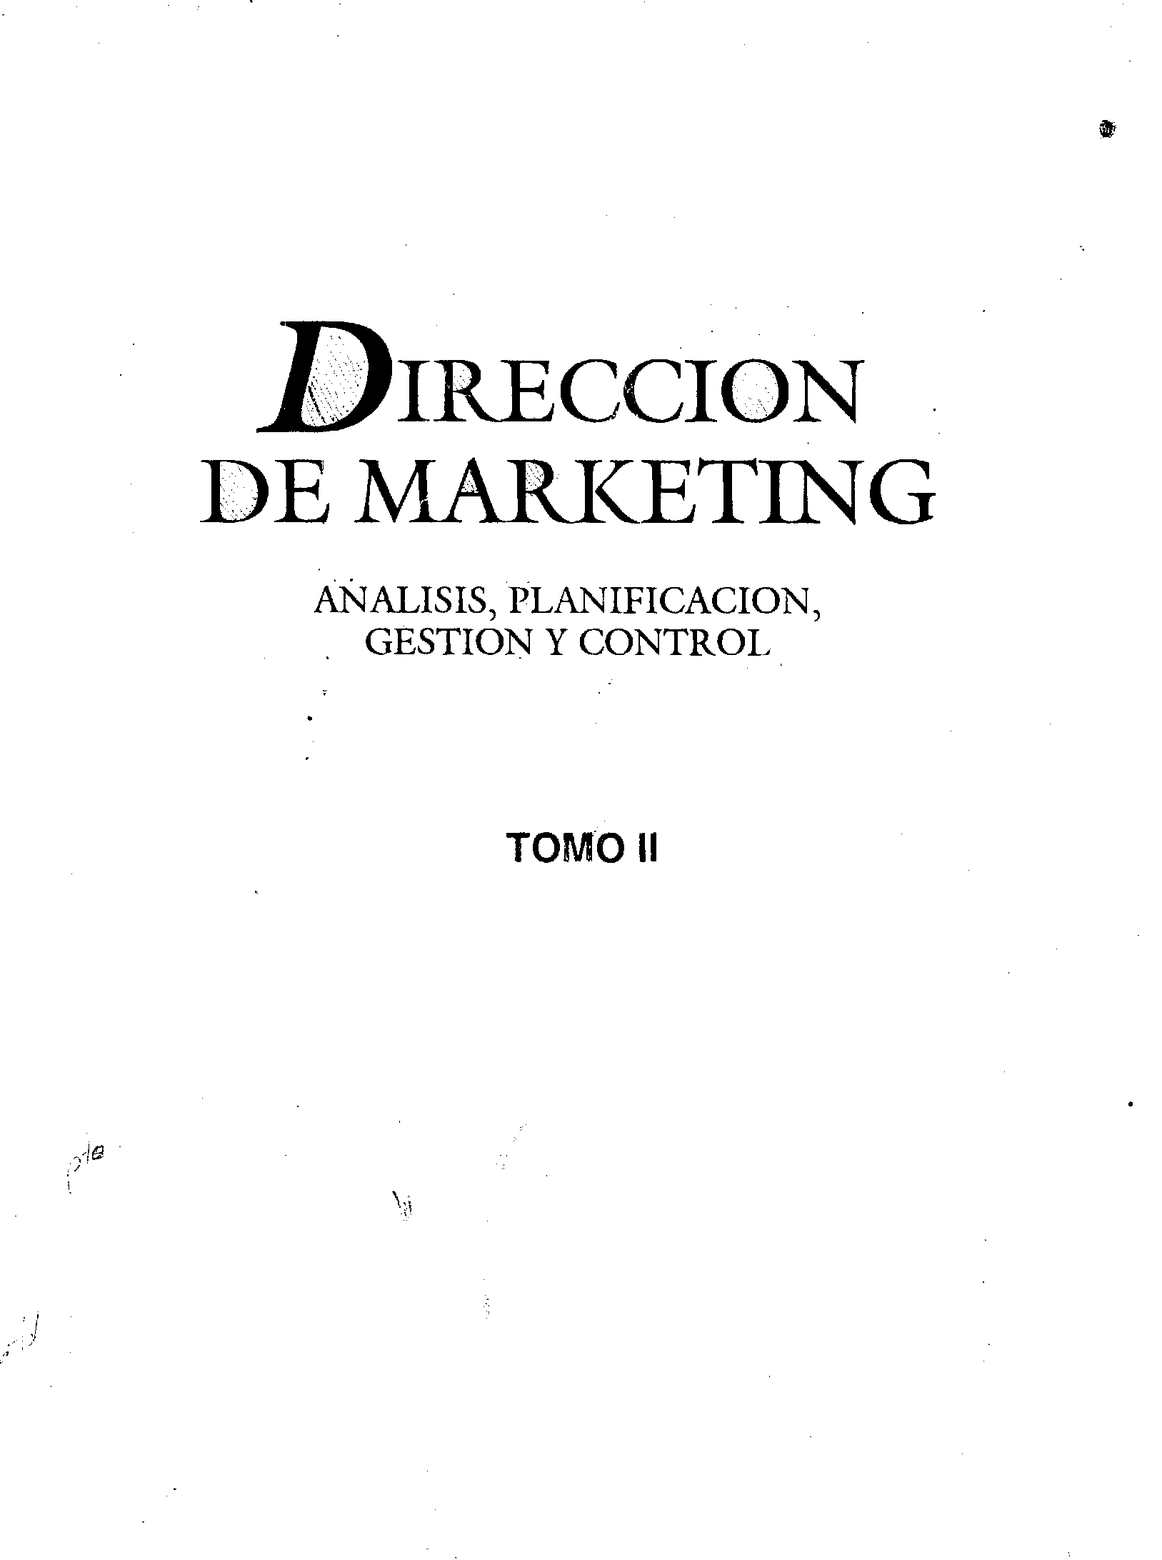 81c47ec3c Calaméo - Dirección de Marketing tomo II